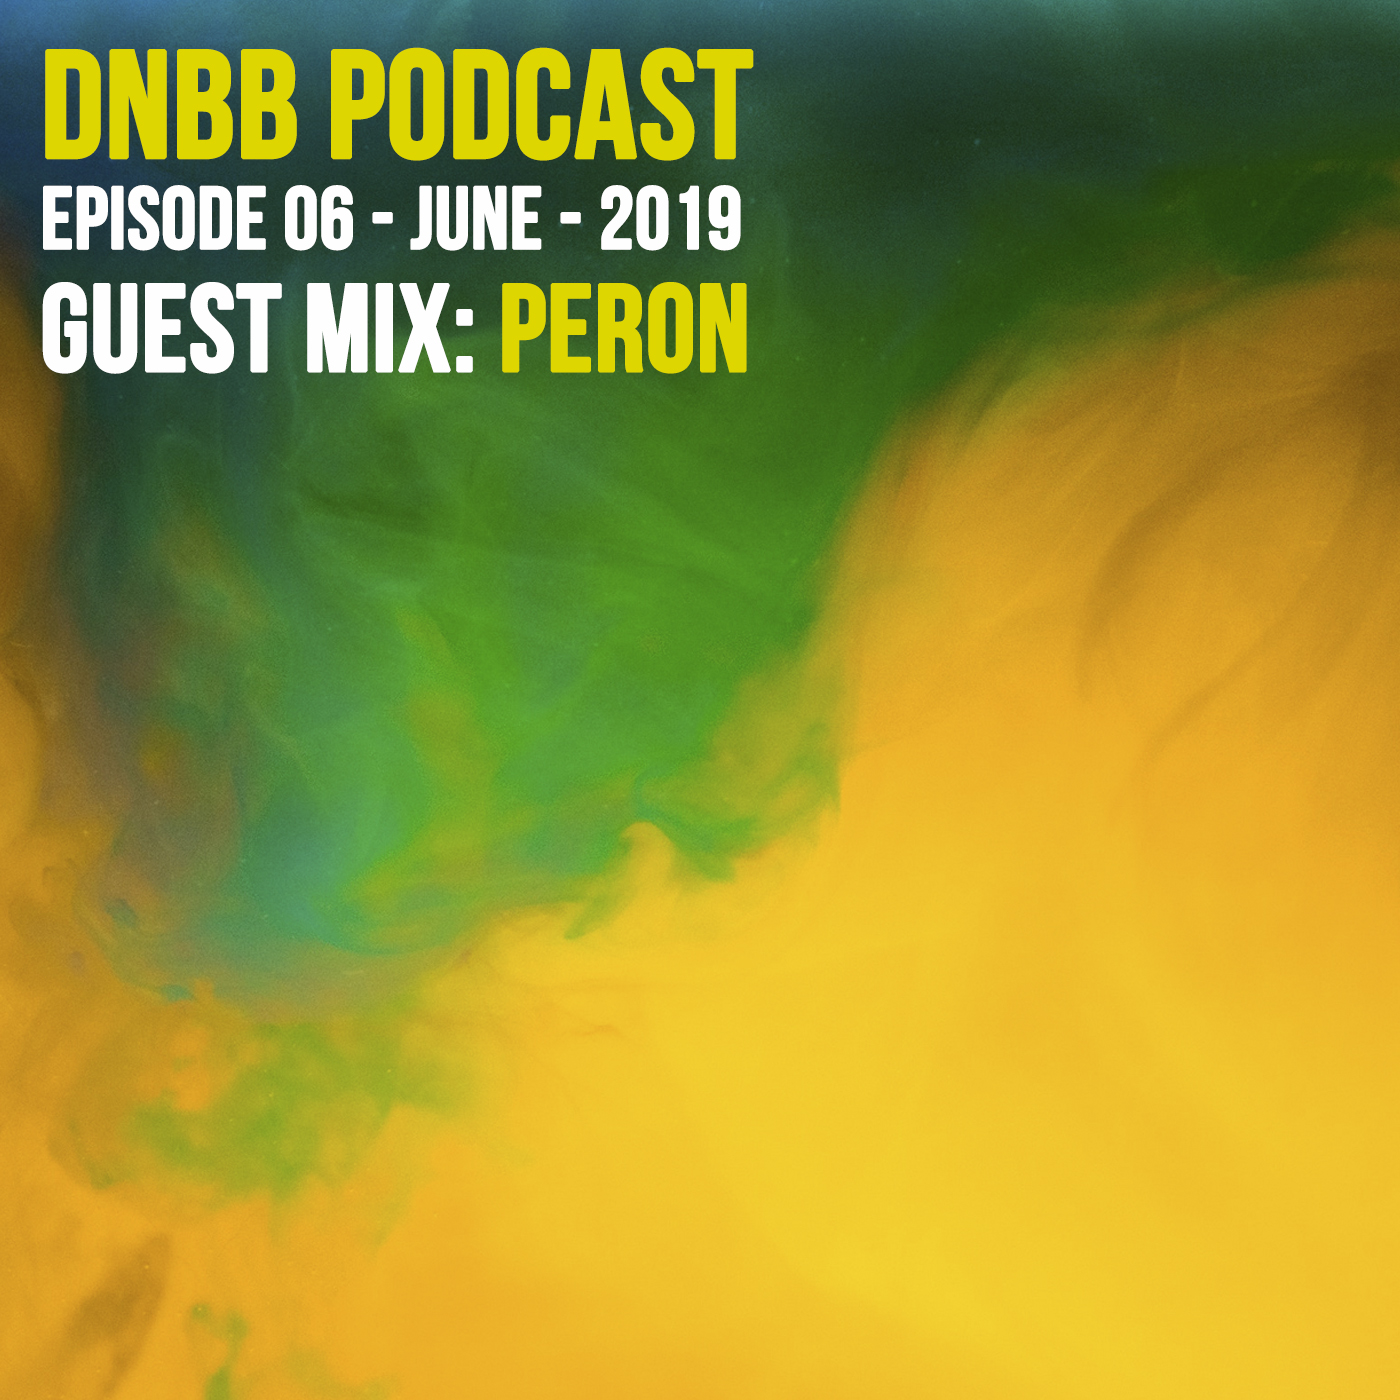 DNBBCast006 by Peron